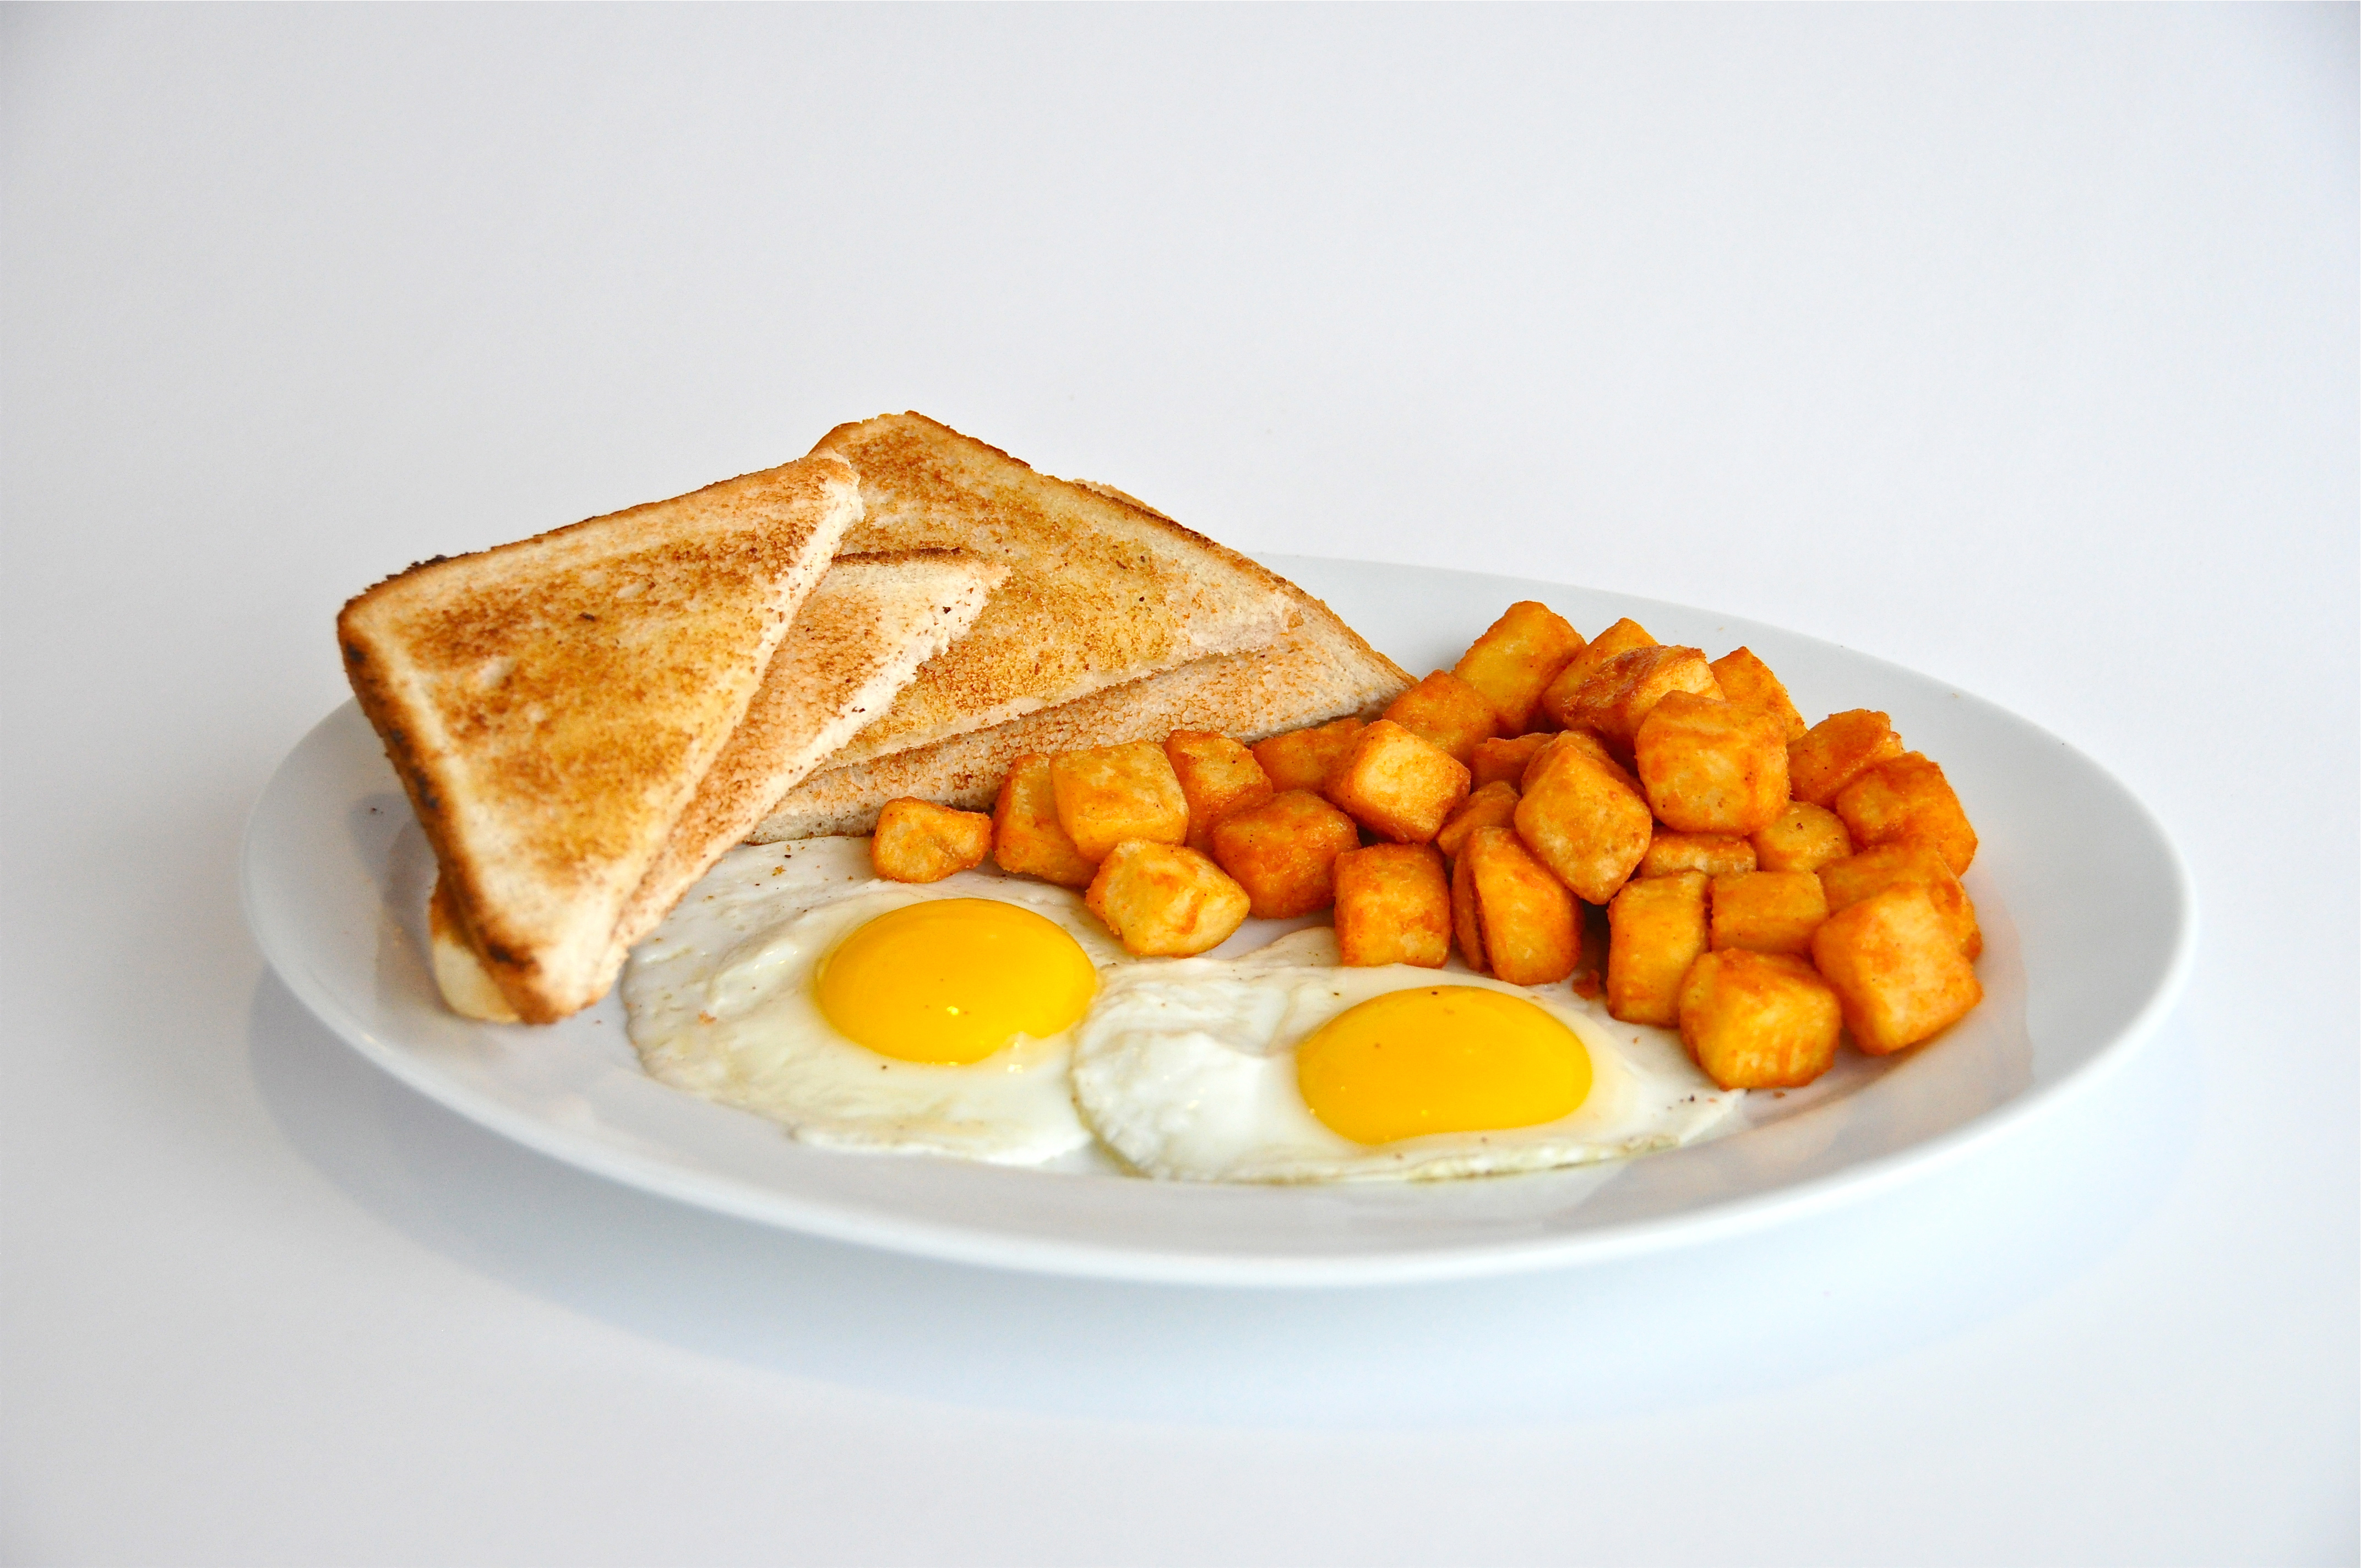 Breakfast Toasts with Hash Browns and Eggs 7456.6 Kb